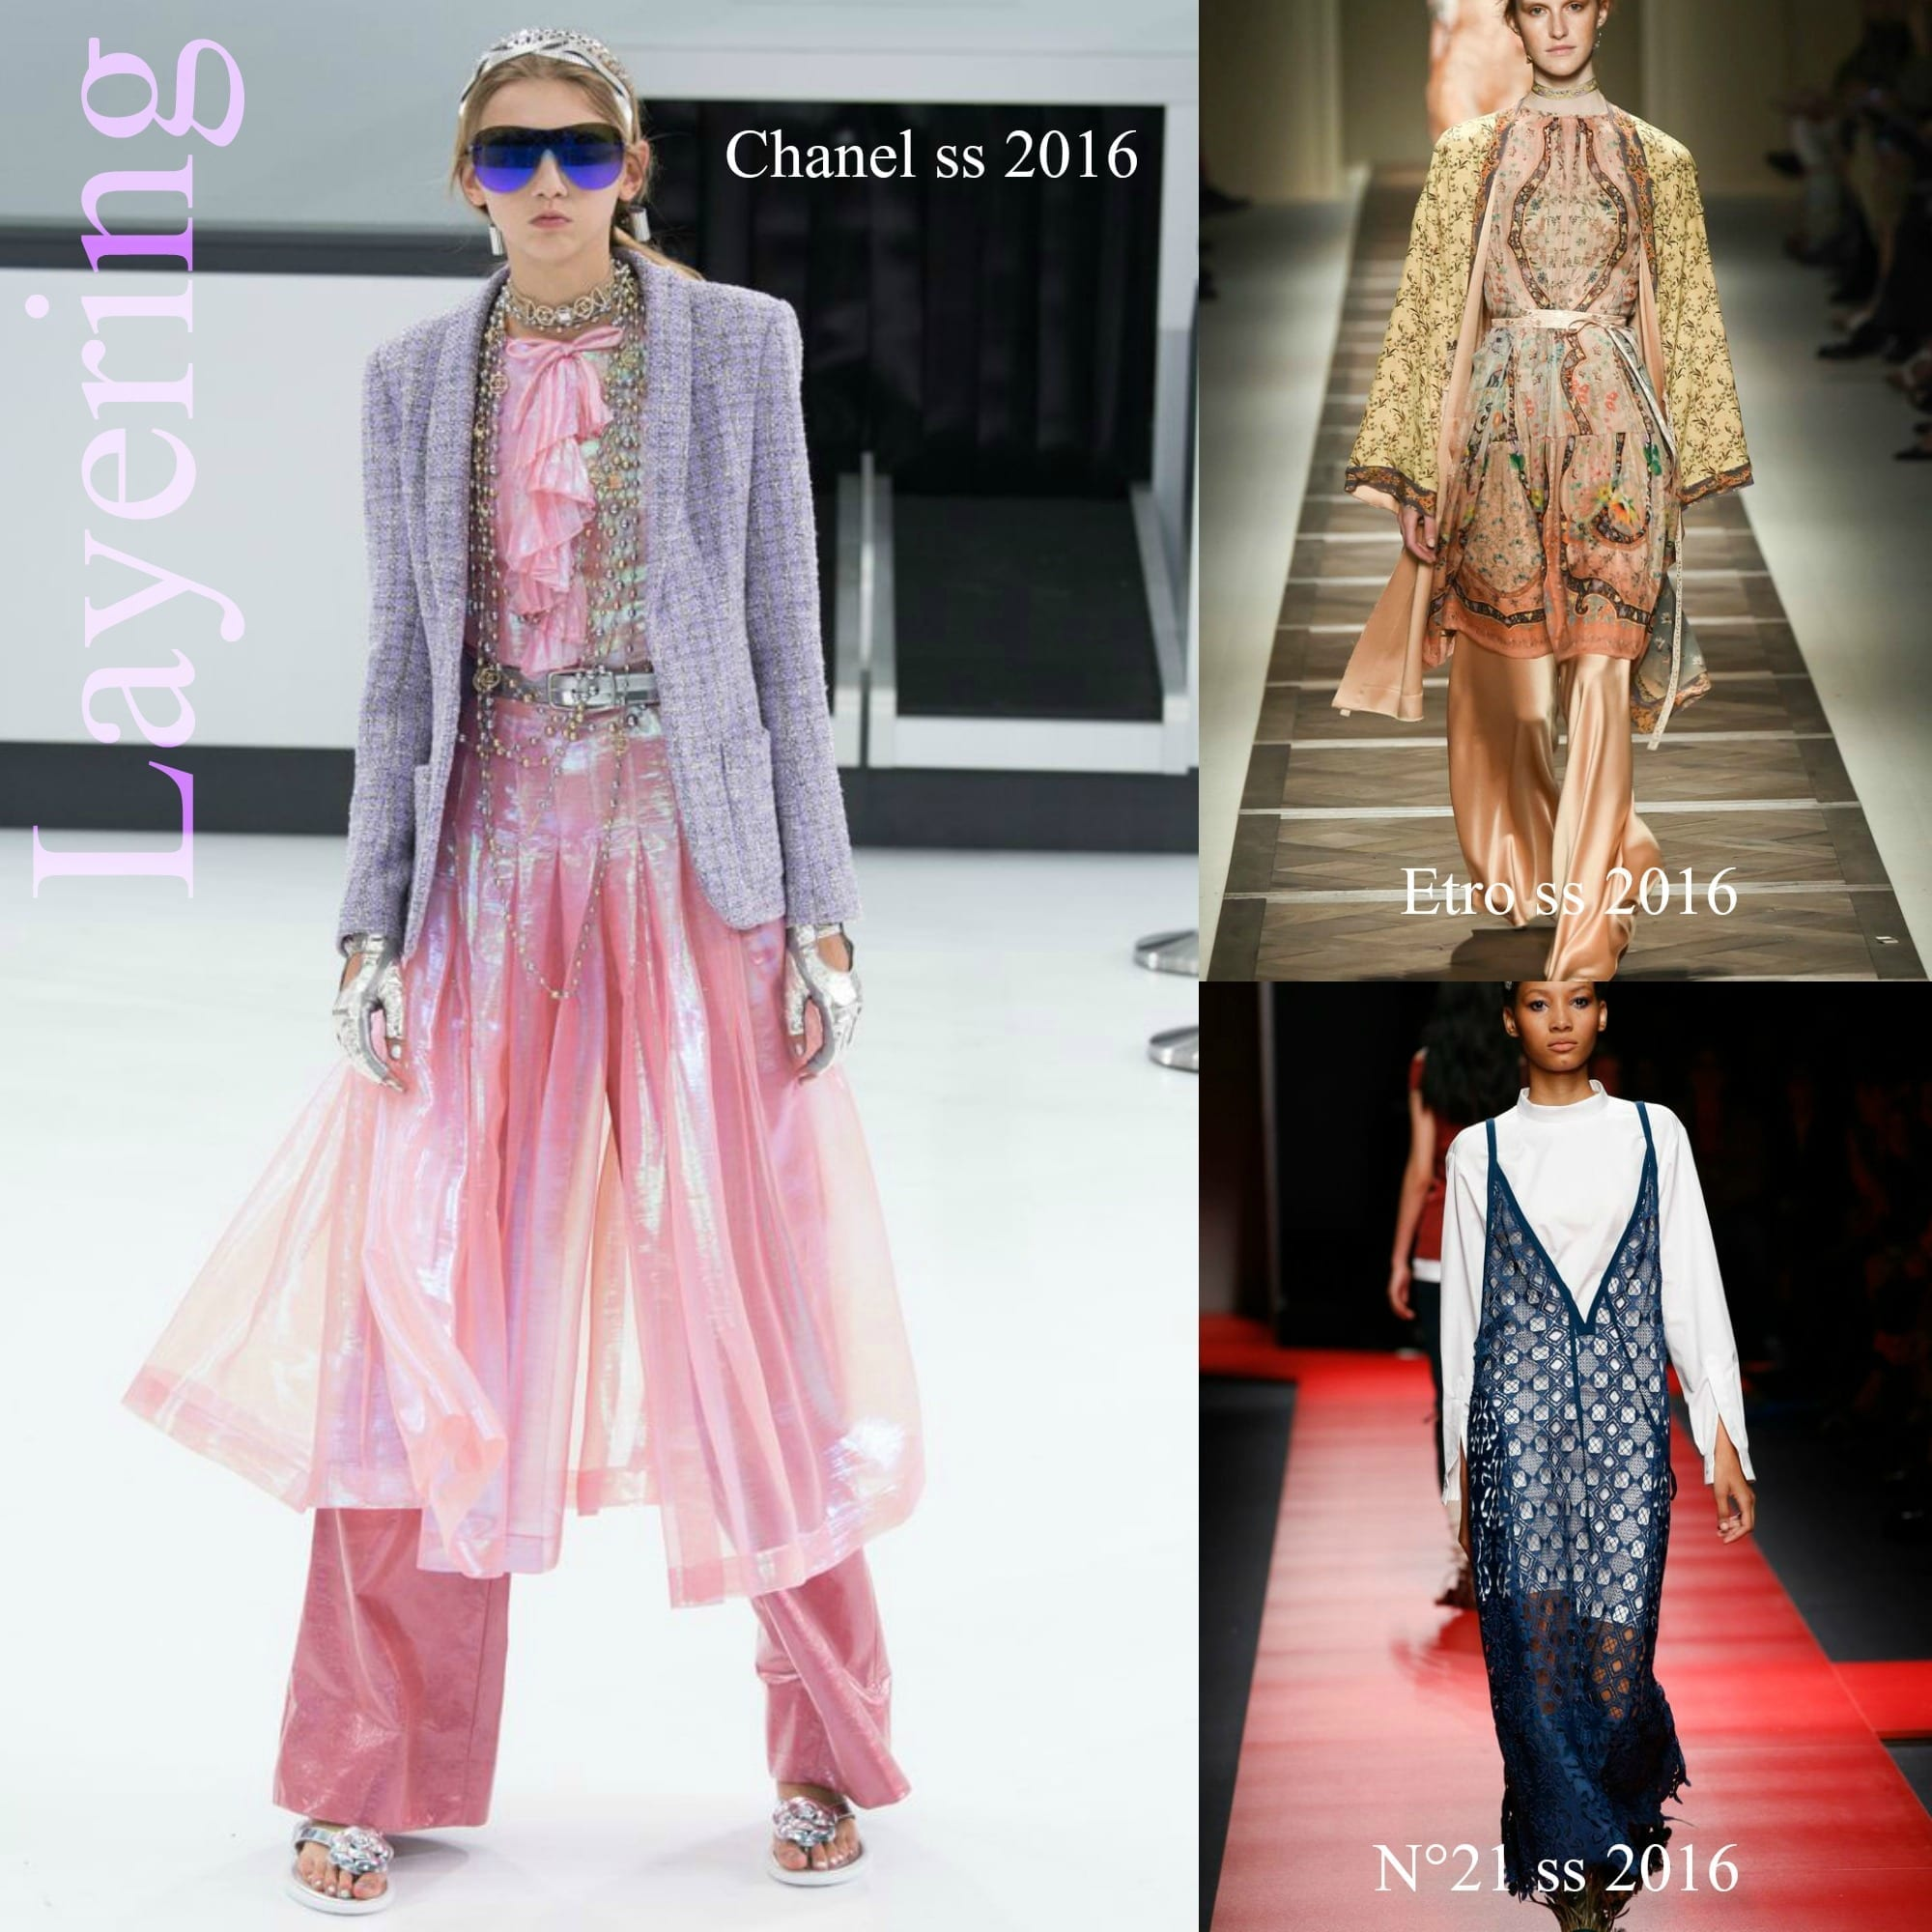 tendenze moda primavera estate, theladycrayc.it, elisa bellino, fashion blogger italiane famose, fashion blog italia, layering trend ss 2016, elisa bellino, chanel ss 2016, etro ss 2016, n 21 ss 2016